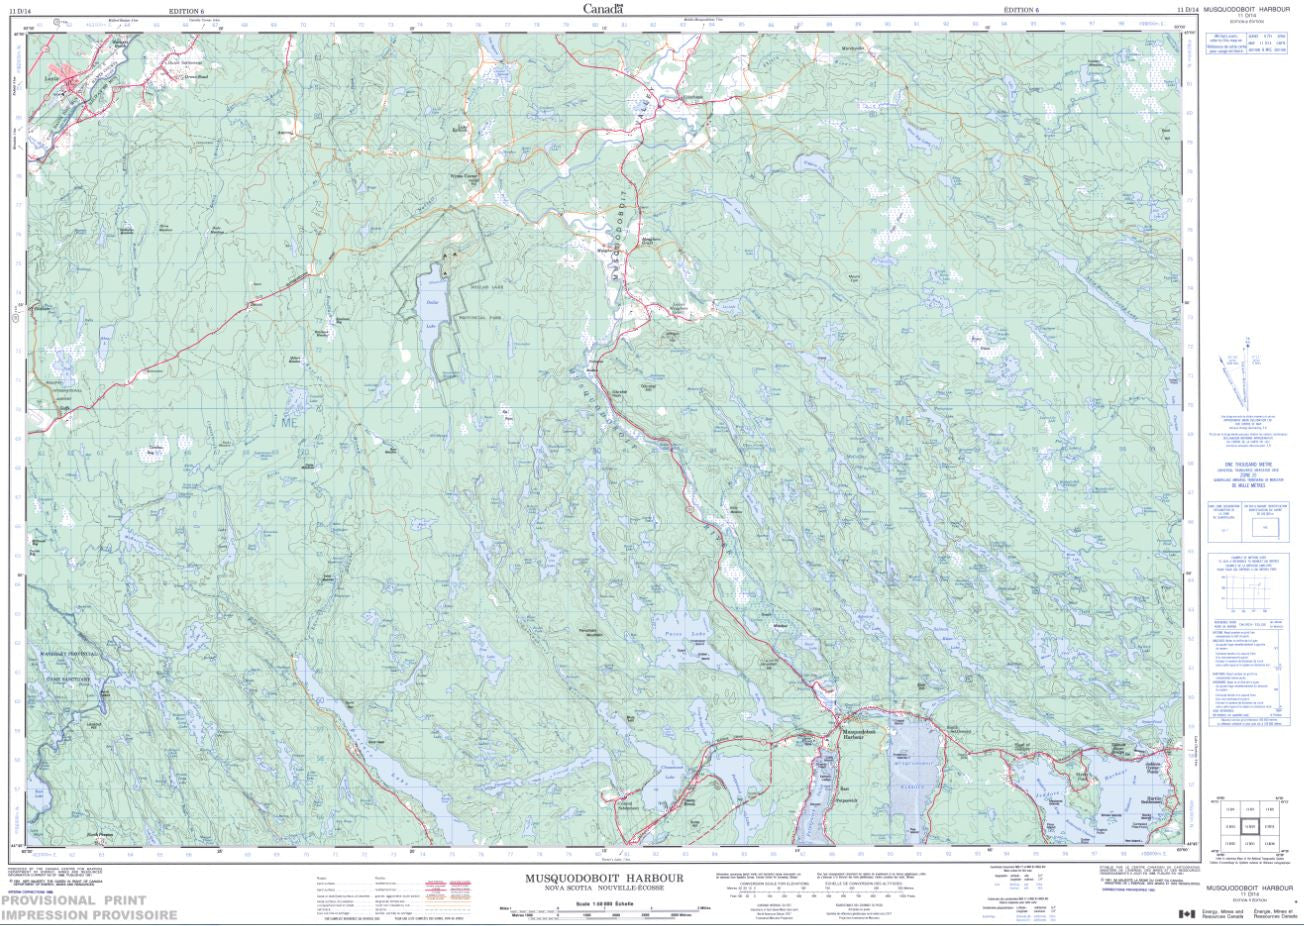 11D/14 Musquodoboit Harbour Topographic Map Nova Scotia